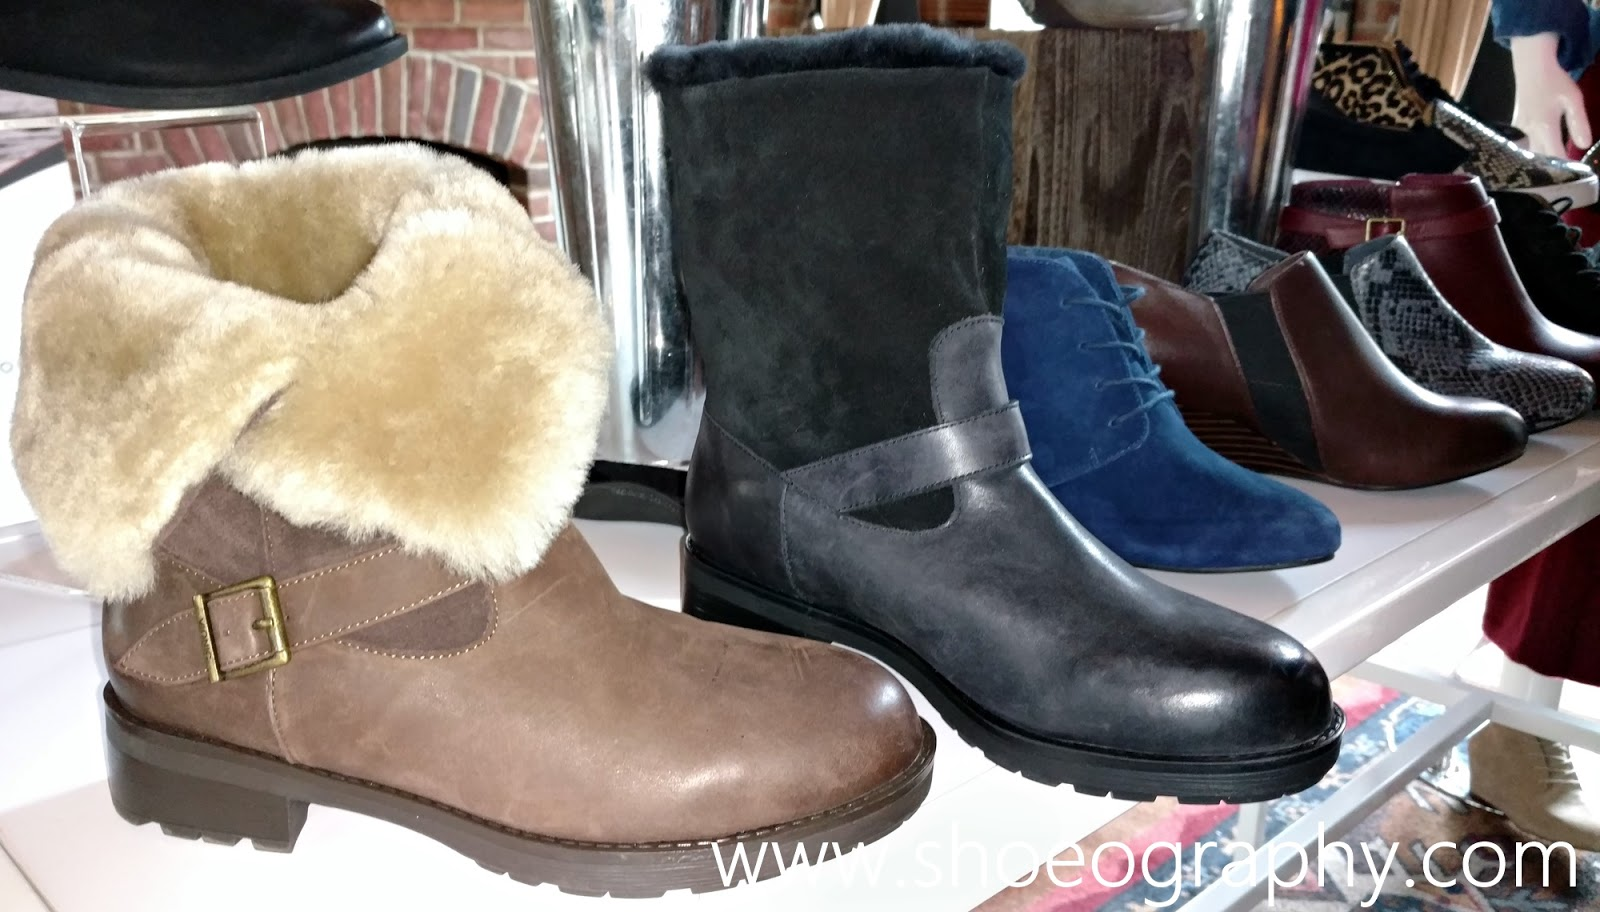 vionic shoes fallwinter 2016 footwear collection